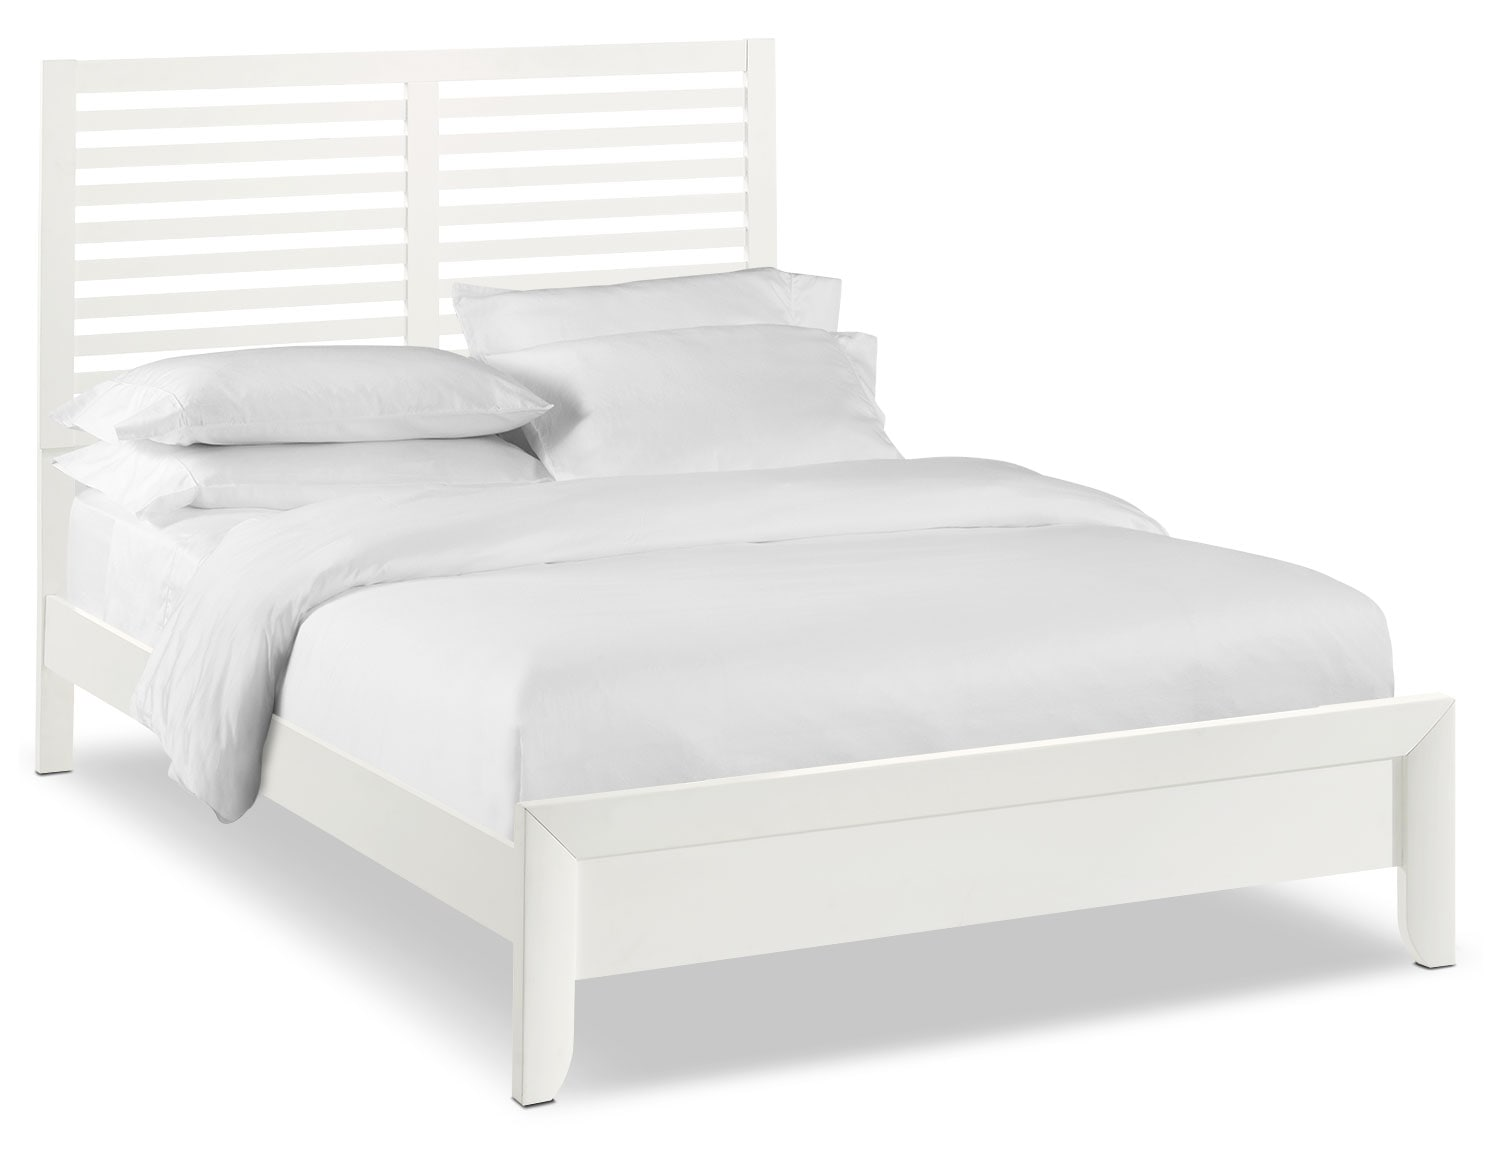 Bedroom Furniture - Braden Queen Slat Bed - White